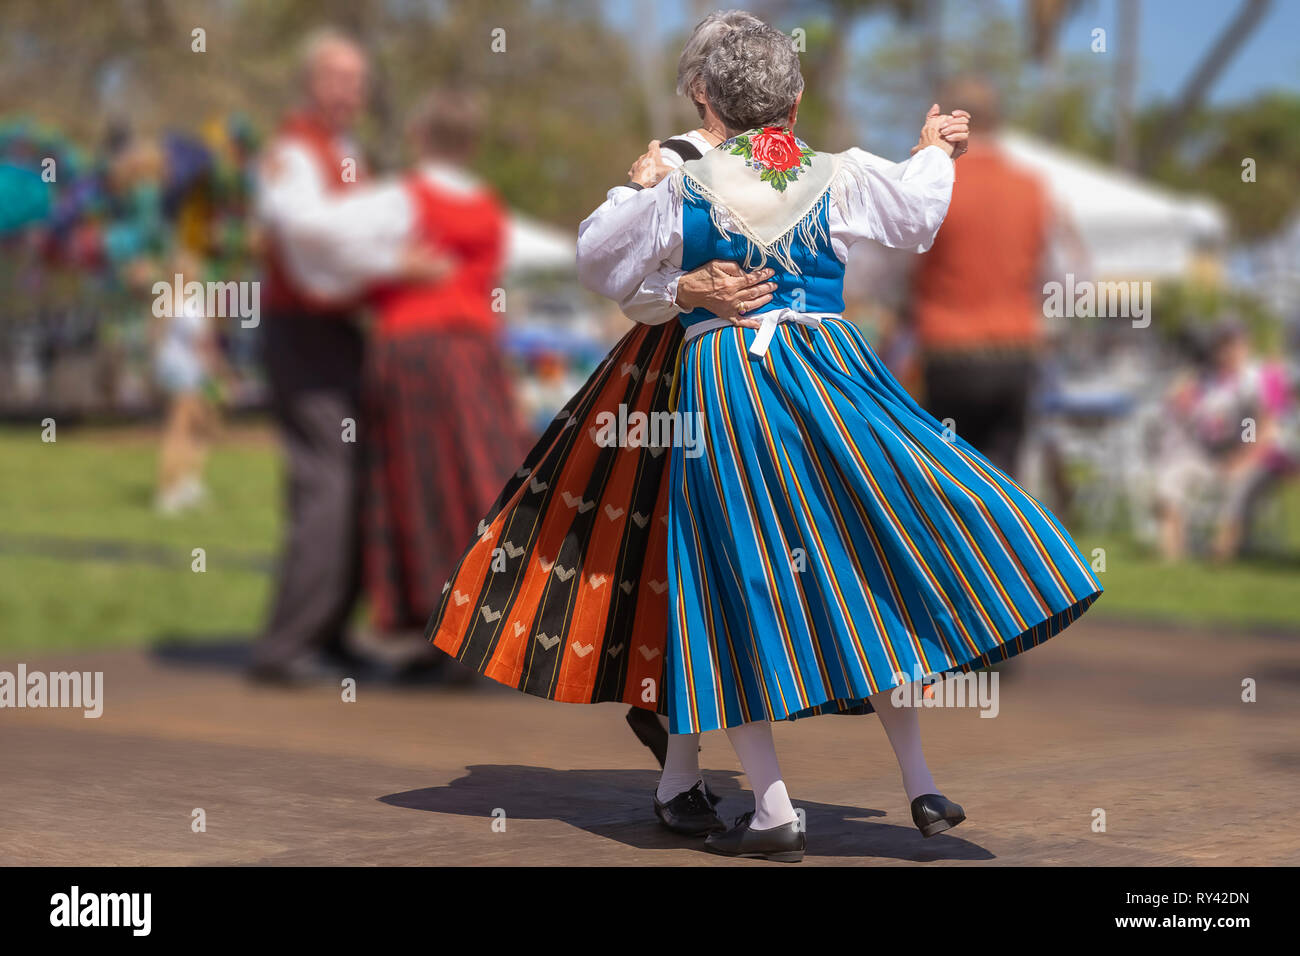 Lake Worth, Florida, USA March 3, 2019,​ Midnight Sun Festival Celebrating Finnish Culture. Two women wearing long beautiful Finnish dresses dancing. - Stock Image